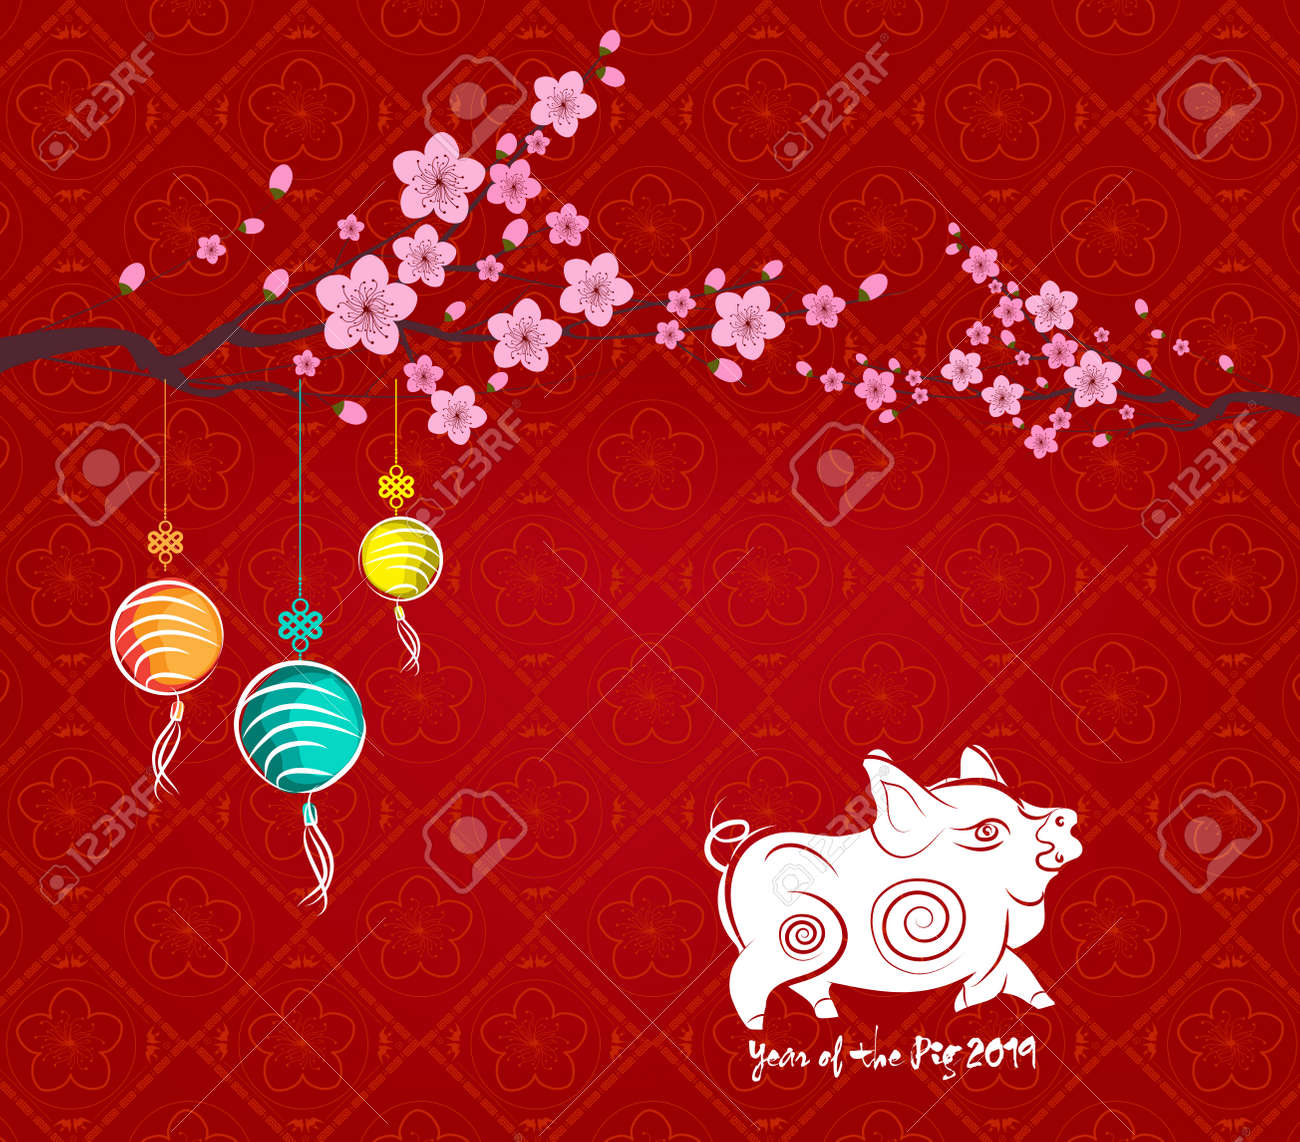 Chinese New Year 2019 Background With Lantern And Plum Blossom